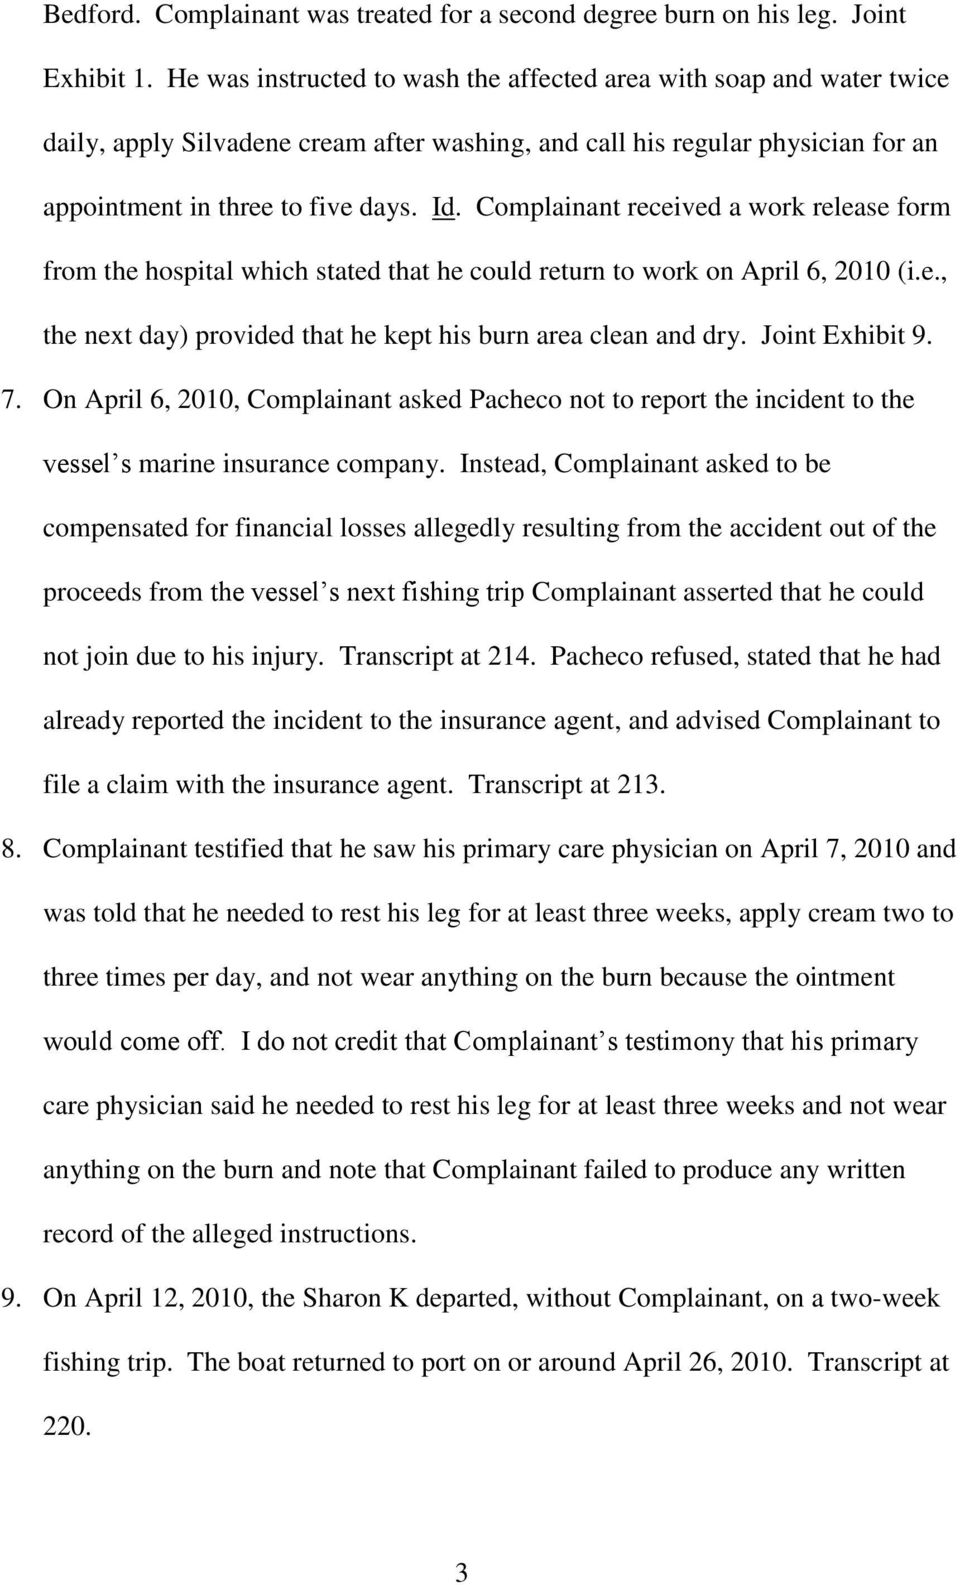 Complainant received a work release form from the hospital which stated that he could return to work on April 6, 2010 (i.e., the next day) provided that he kept his burn area clean and dry.